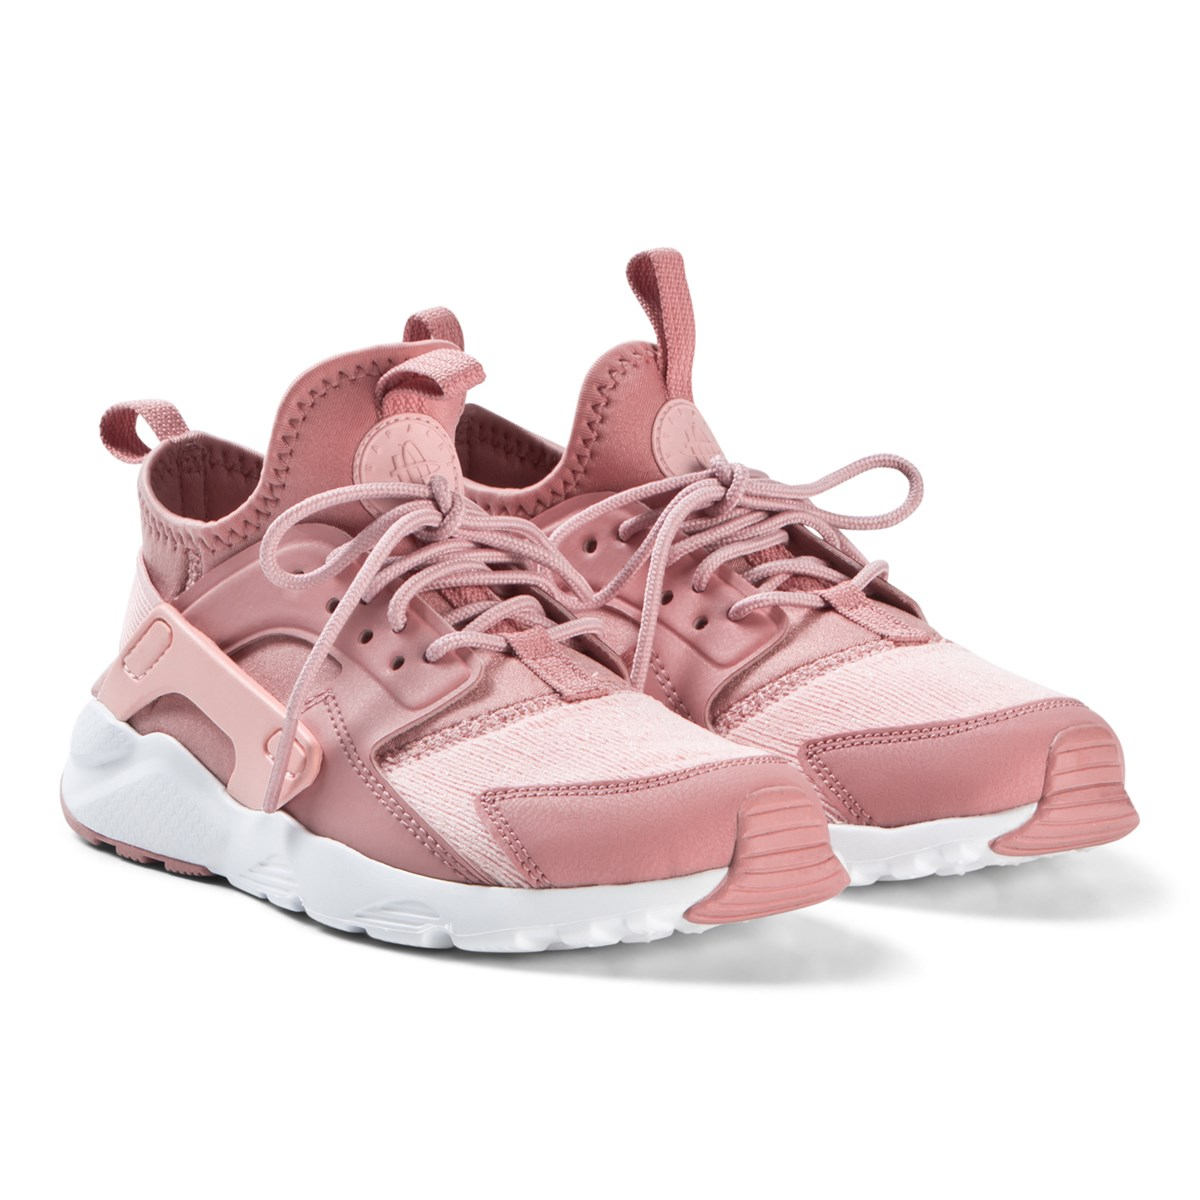 reputable site 519e6 c704d nike pink huarache run ultra se shoes